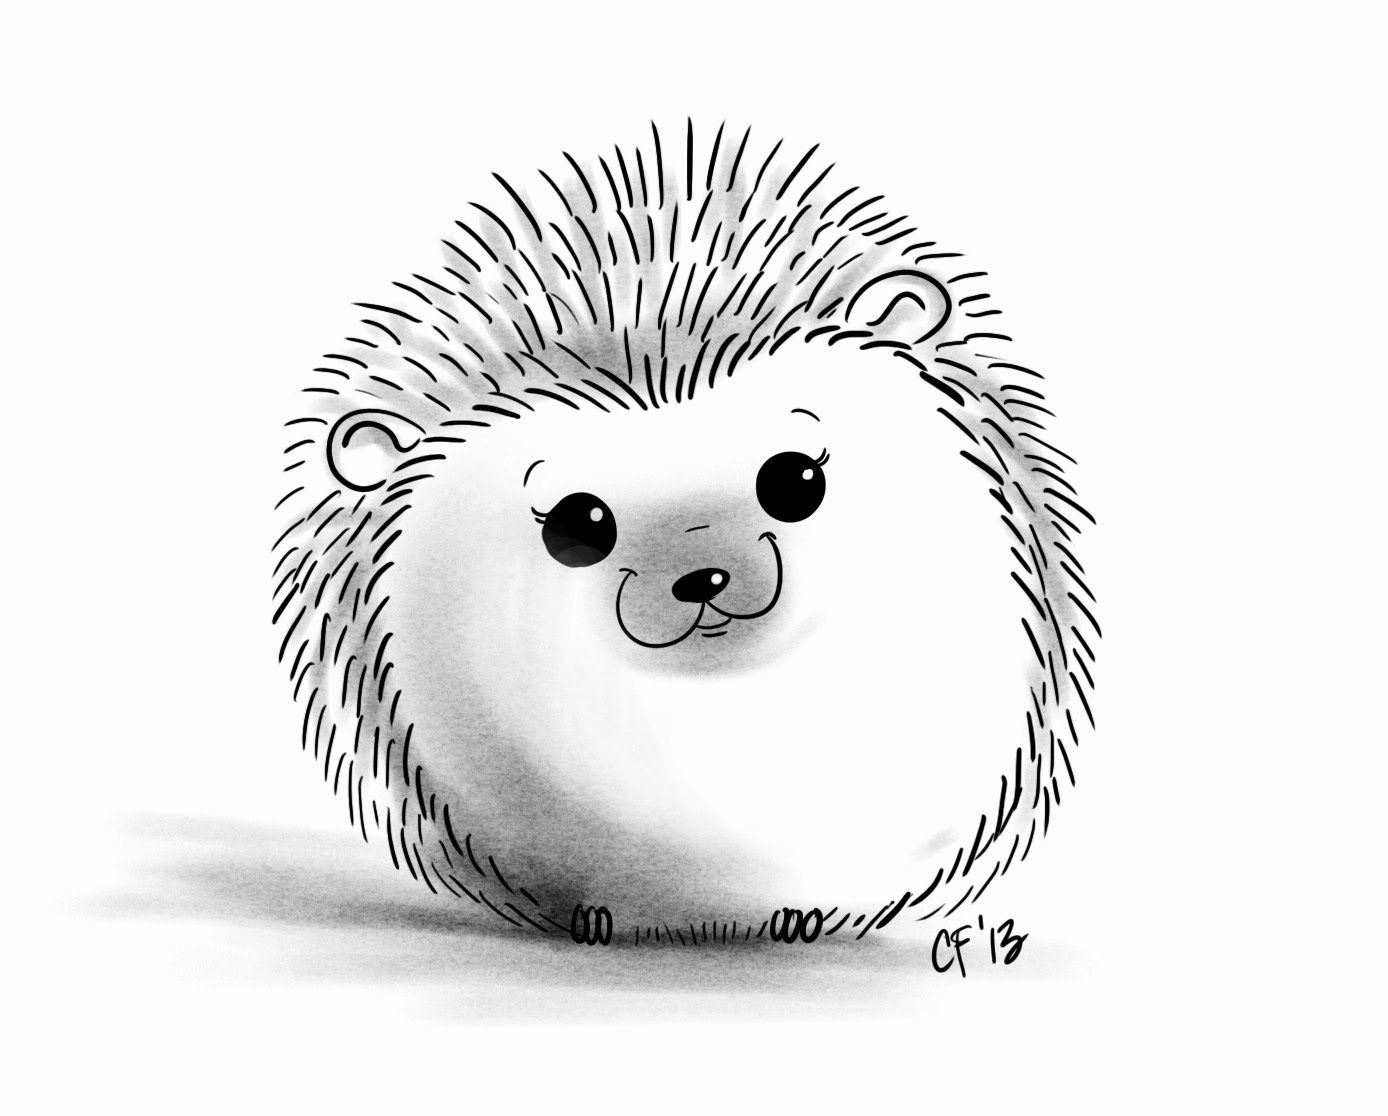 Line Drawings Of Cute Animals : Hedgehog drawing quoteko pinterest